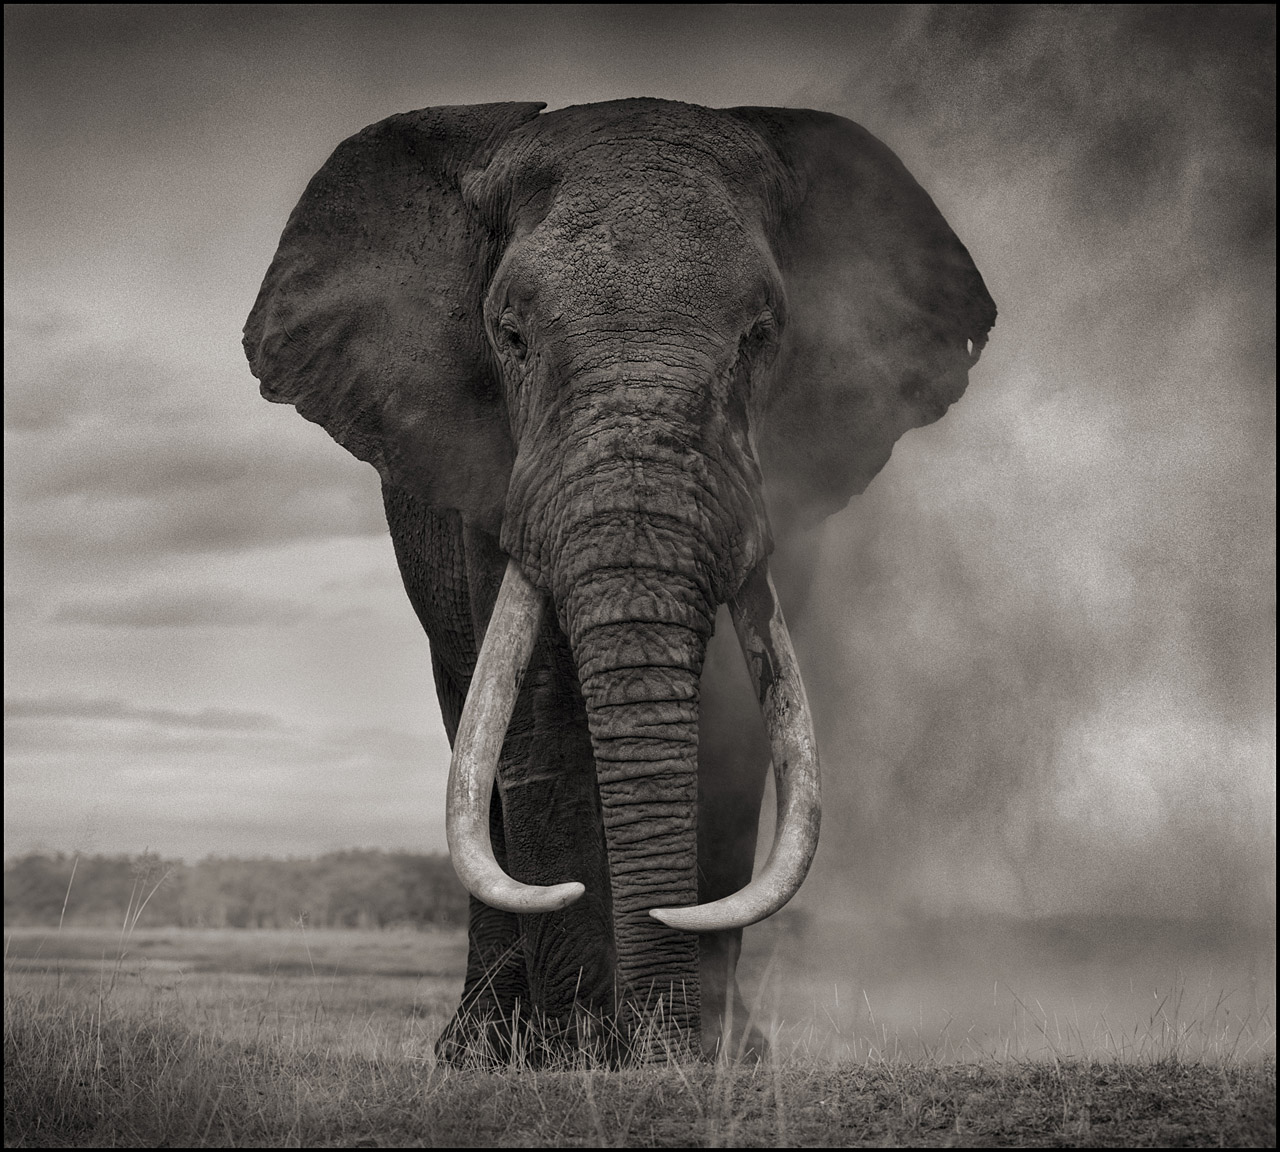 Portrait of Elephant in Dust